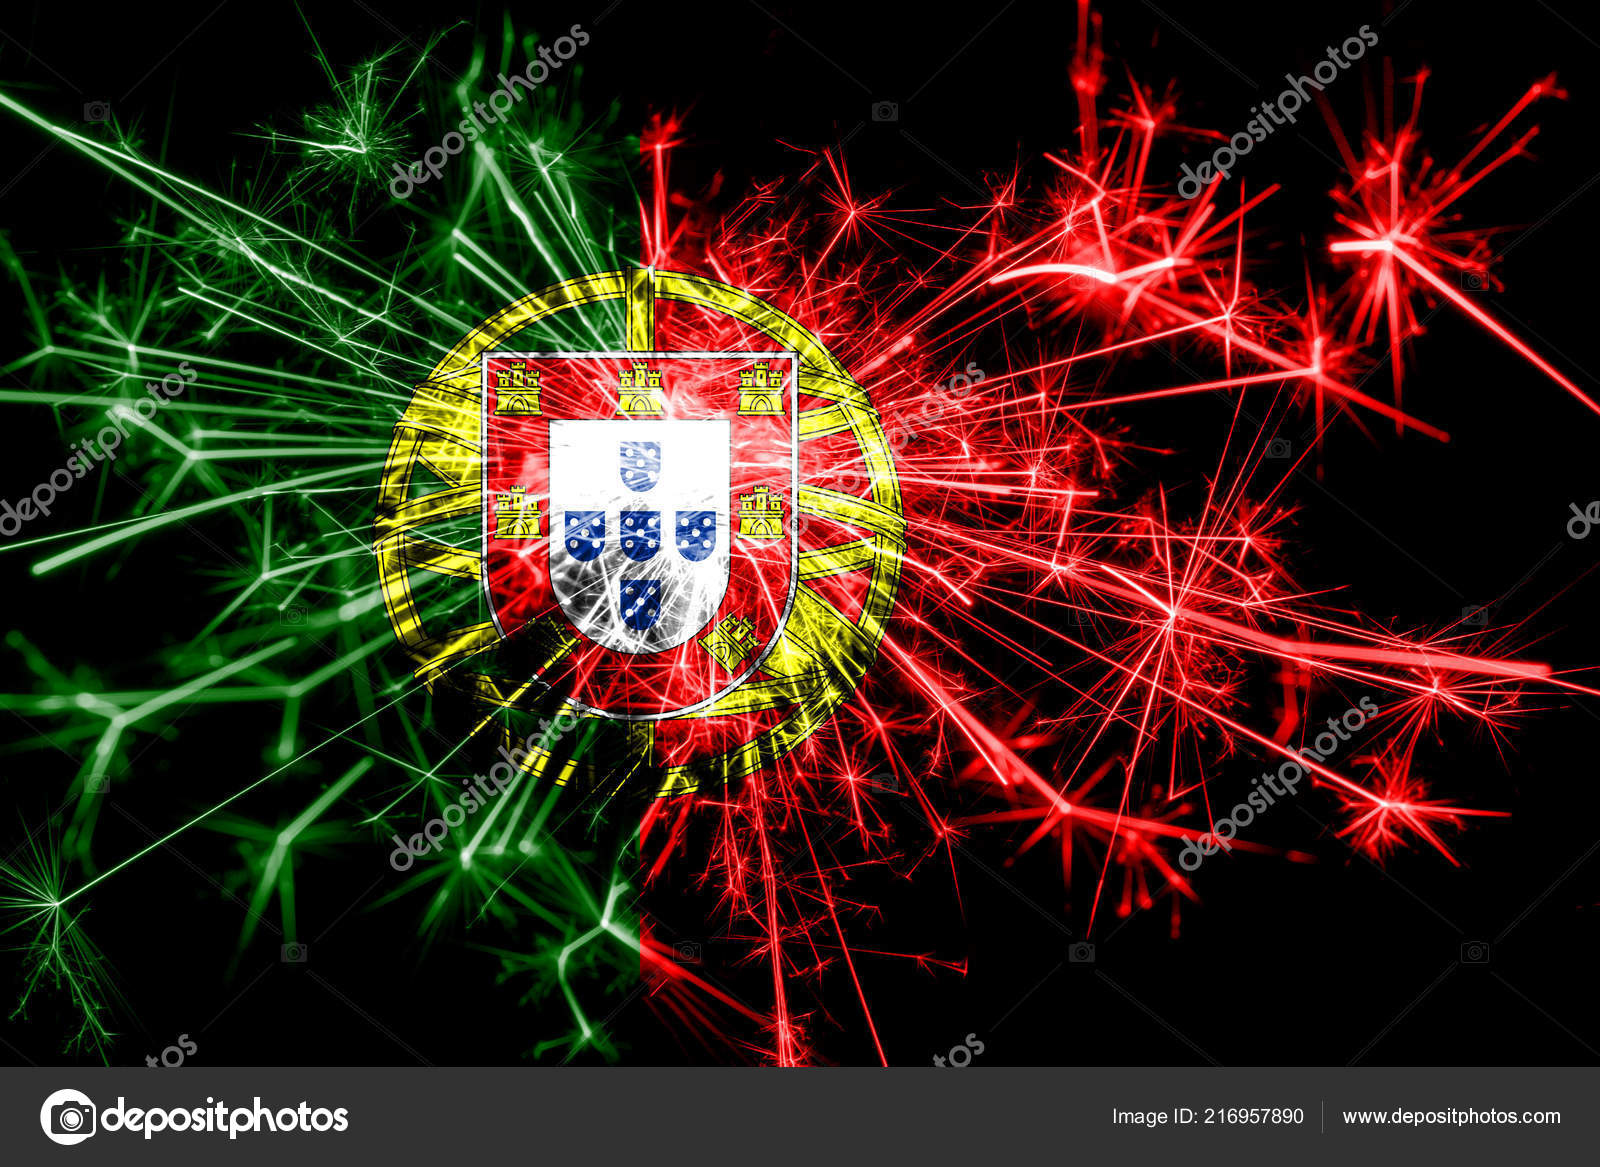 Christmas In Portugal 2019.Portugal Fireworks Sparkling Flag New Year 2019 Christmas